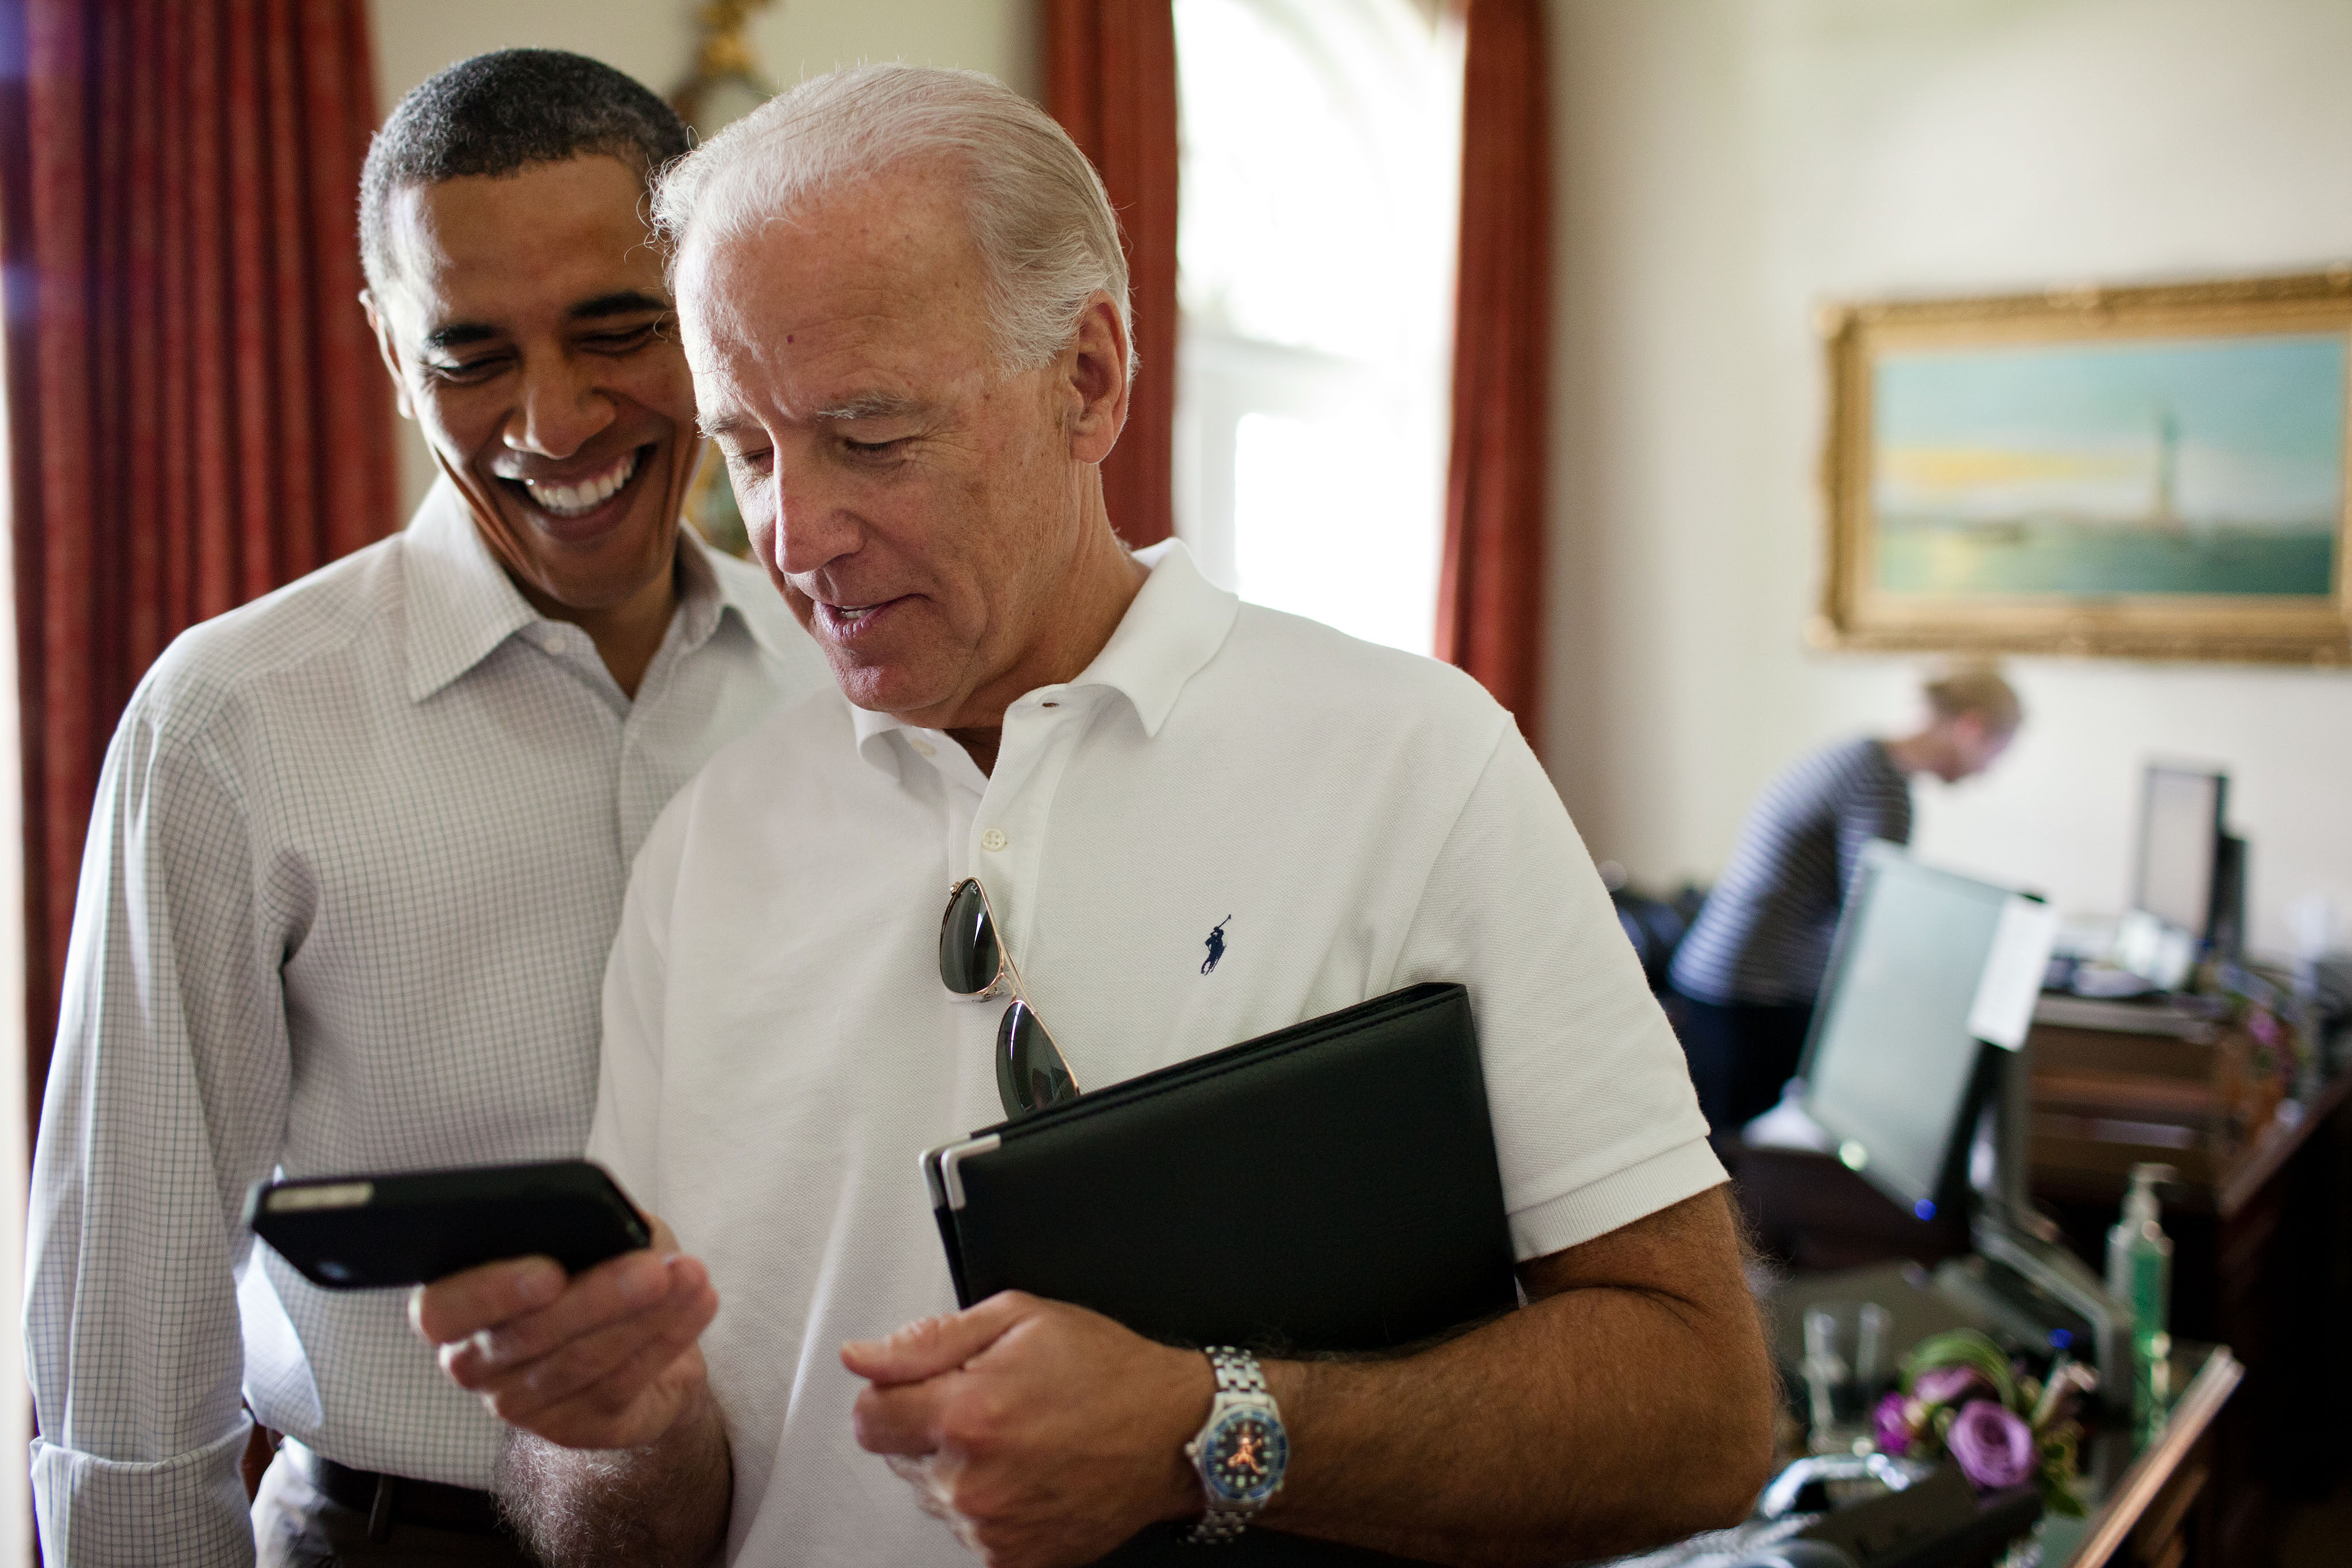 Vice President Joe Biden and President Barack Obama look at an app on an iPhone in the Outer Oval Office, Saturday, July 16, 2011. (Official White House Photo by Pete Souza) This official White House photograph is being made available only for publication by news organizations and/or for personal use printing by the subject(s) of the photograph. The photograph may not be manipulated in any way and may not be used in commercial or political materials, advertisements, emails, products, promotions that in any way suggests approval or endorsement of the President, the First Family, or the White House.